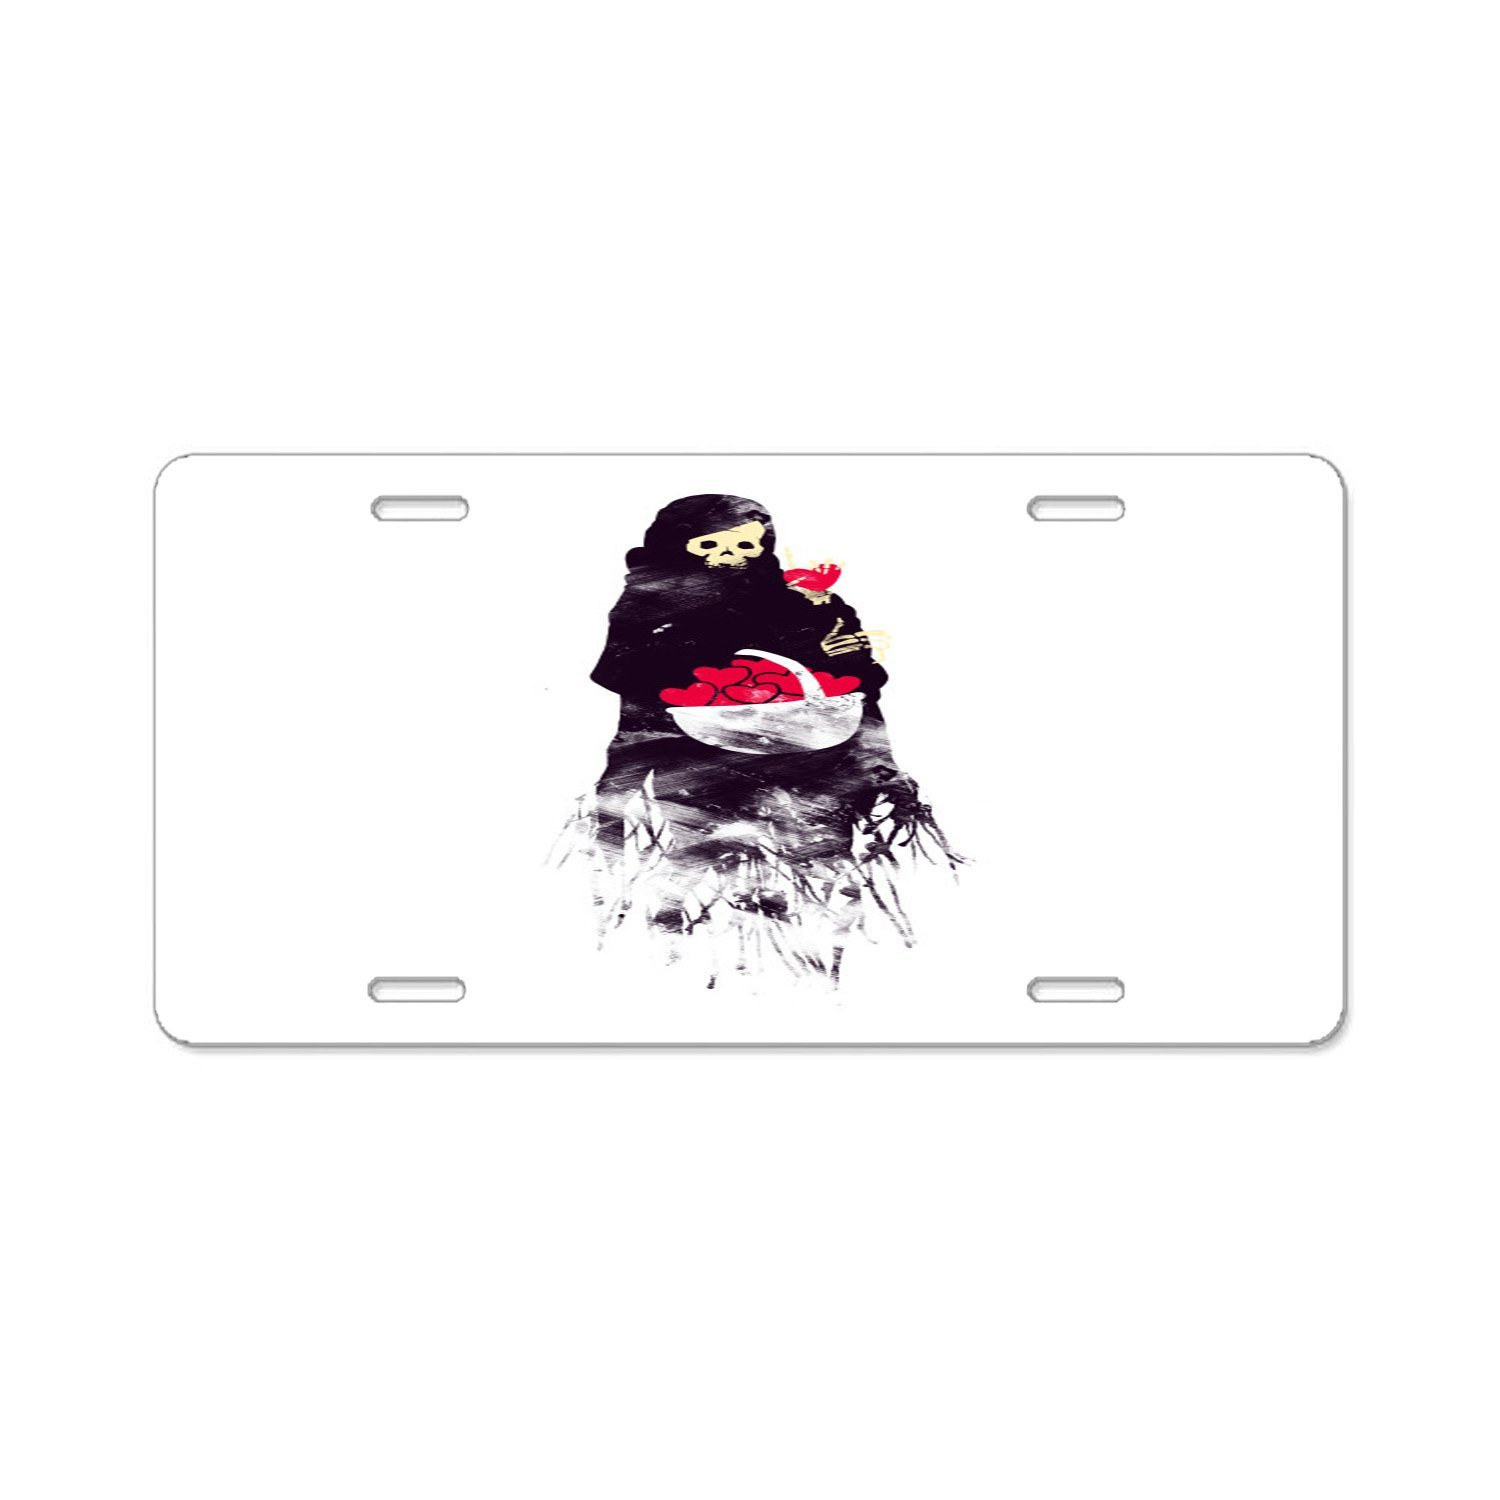 Bchengquch American Automobile Plate Frame Covers Love Bidoof Vanity Metal Novelty License Plate Tag Sign